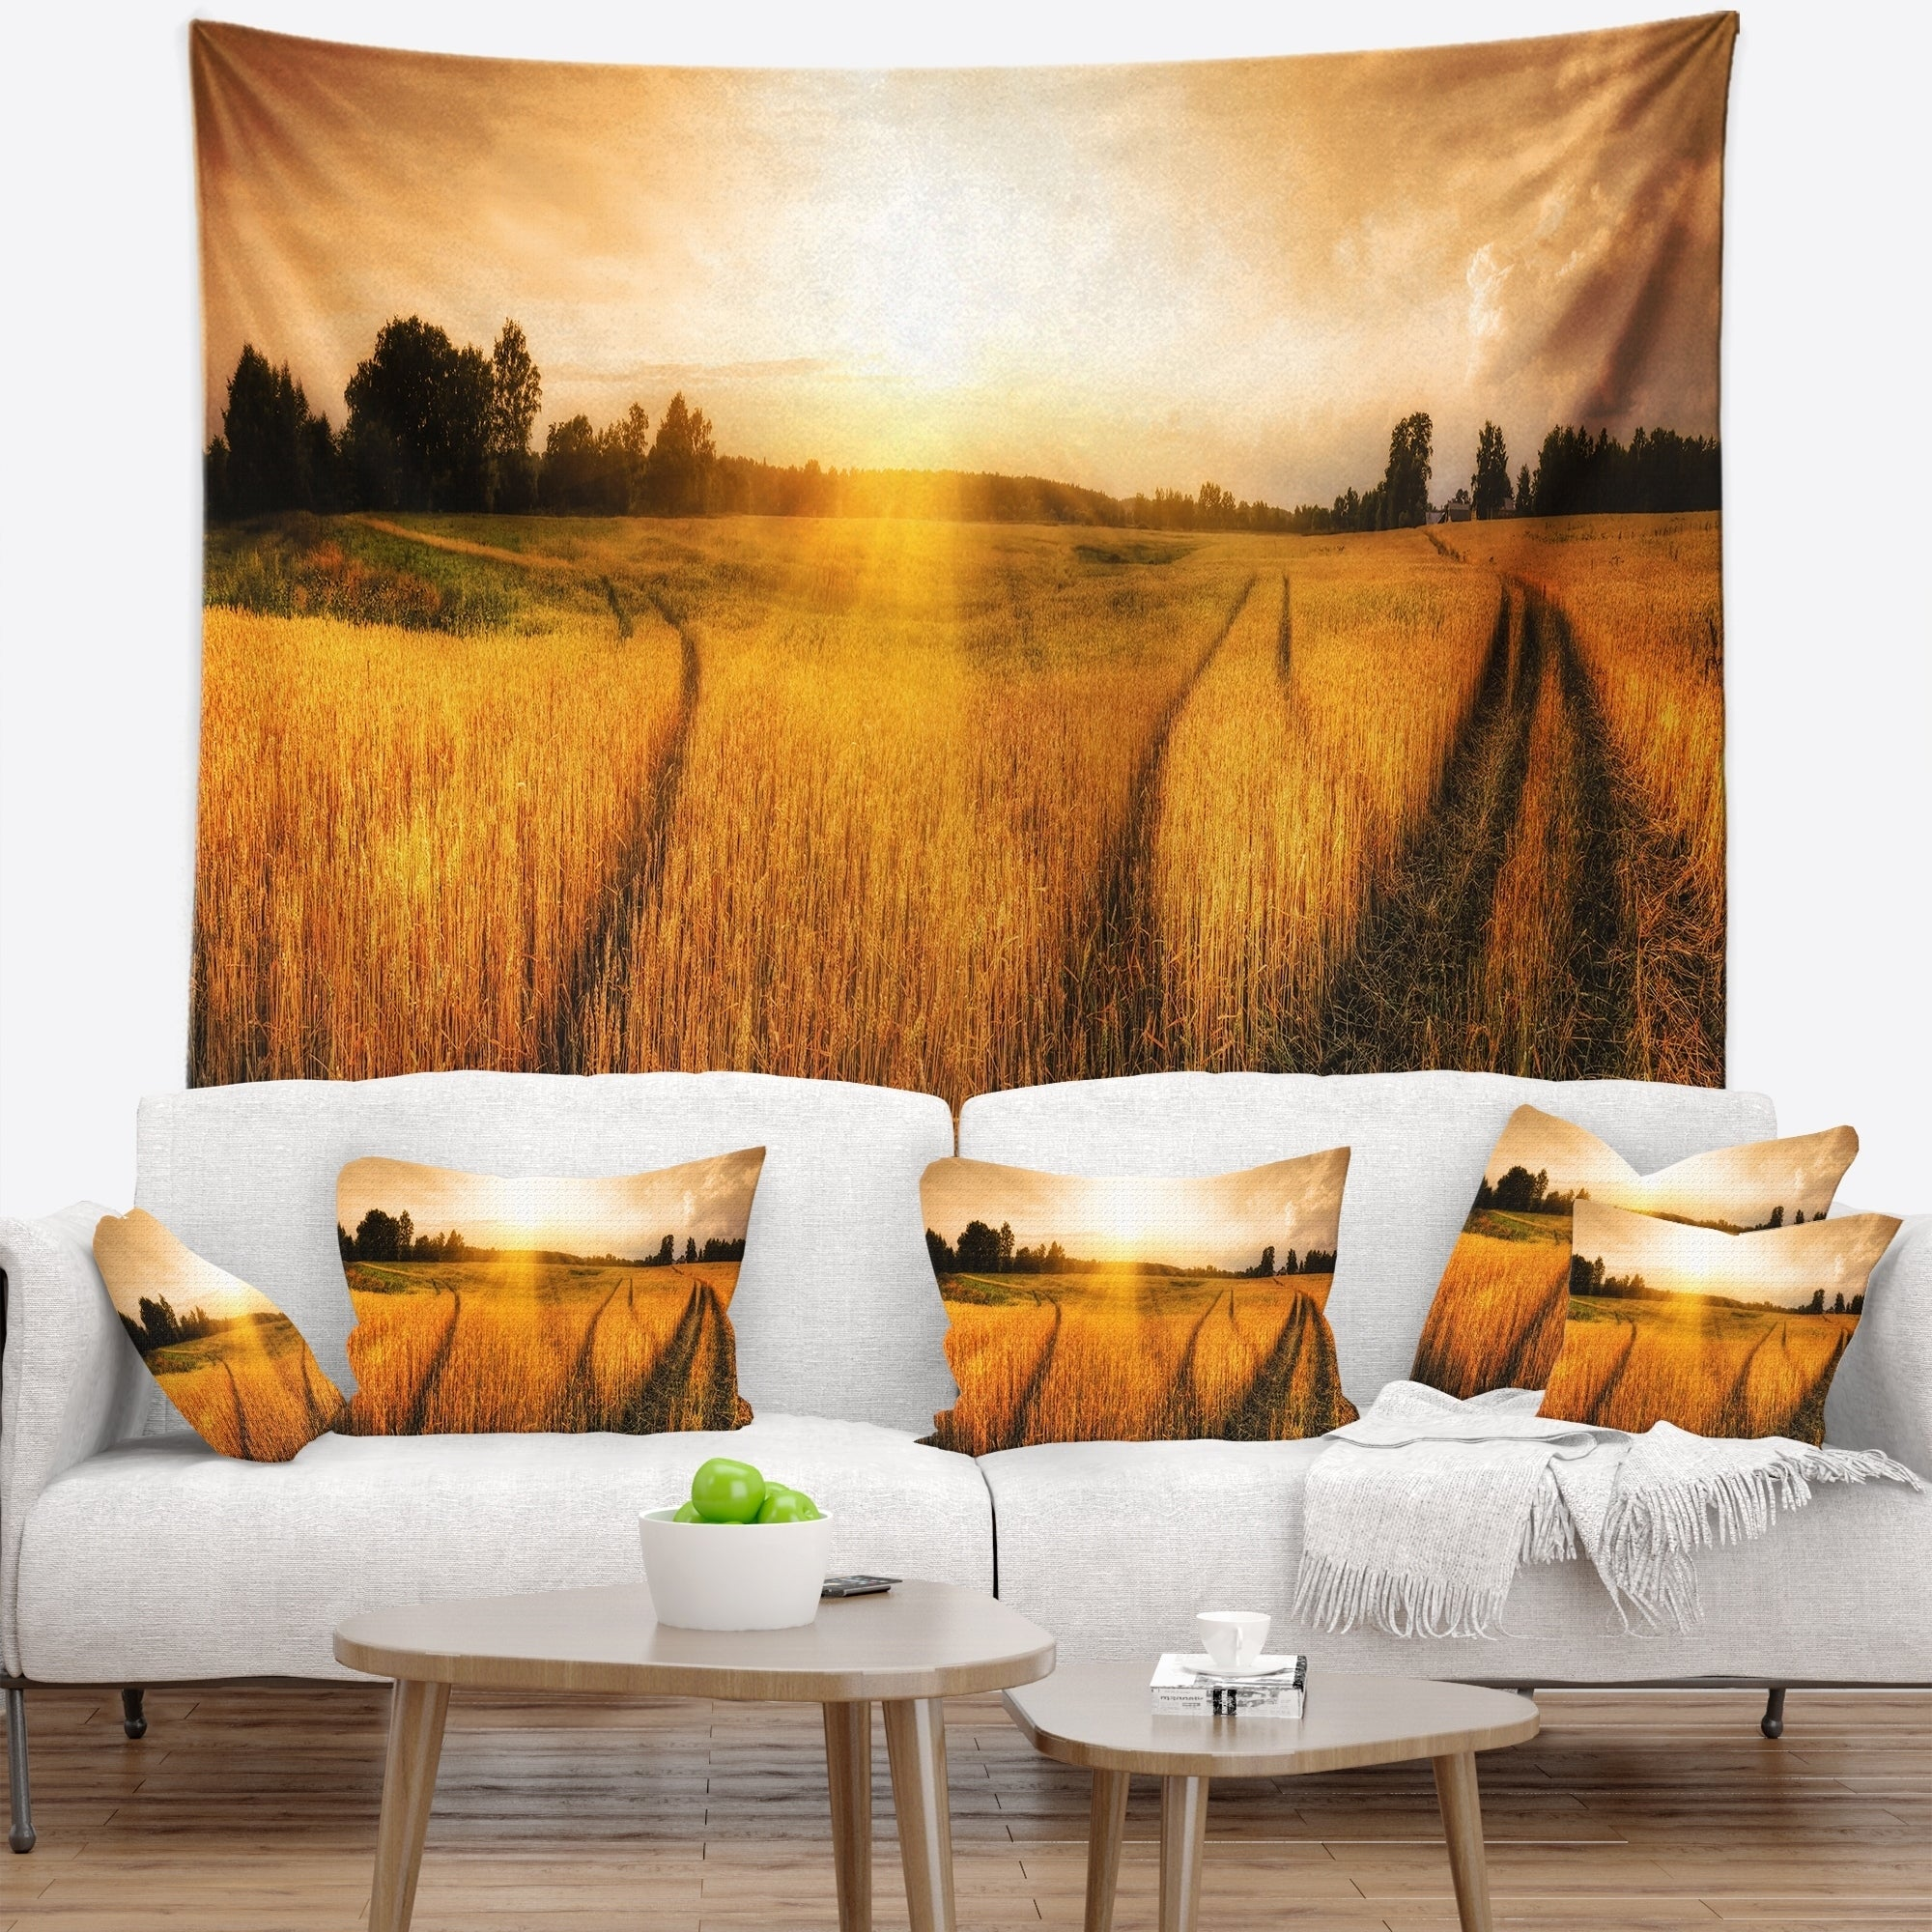 Designart Wheat Field At Sunset Panorama Photography Wall Tapestry Overstock 20885914